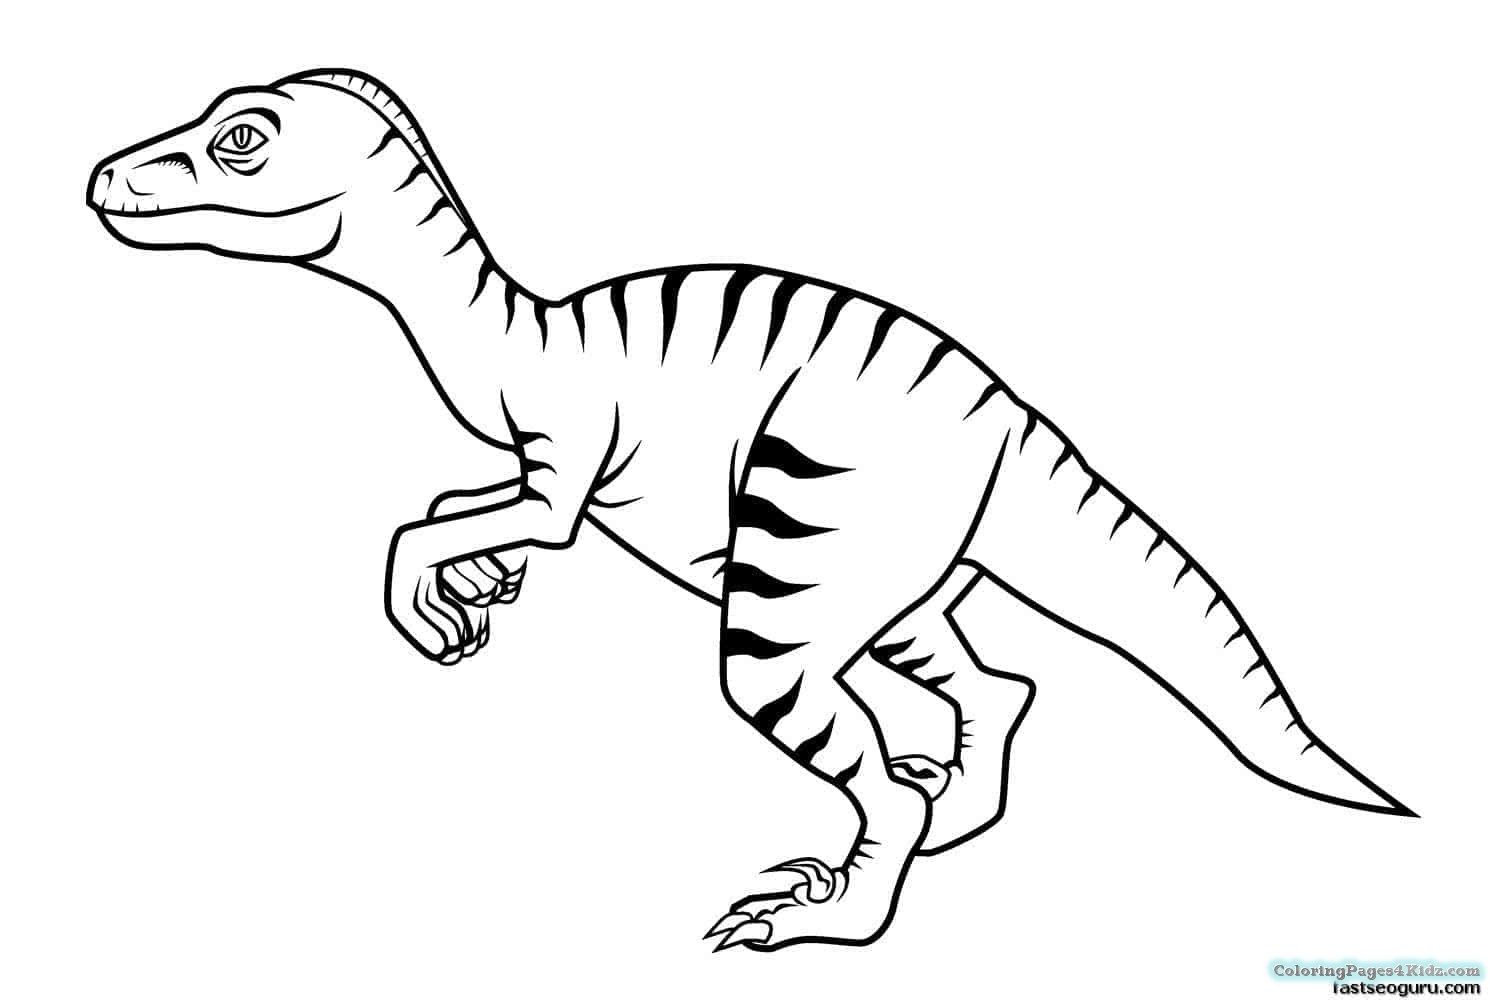 meat eating dinosaur coloring pages meat eating dinosaurs coloring pages t rex coloring dinosaur pages meat coloring eating